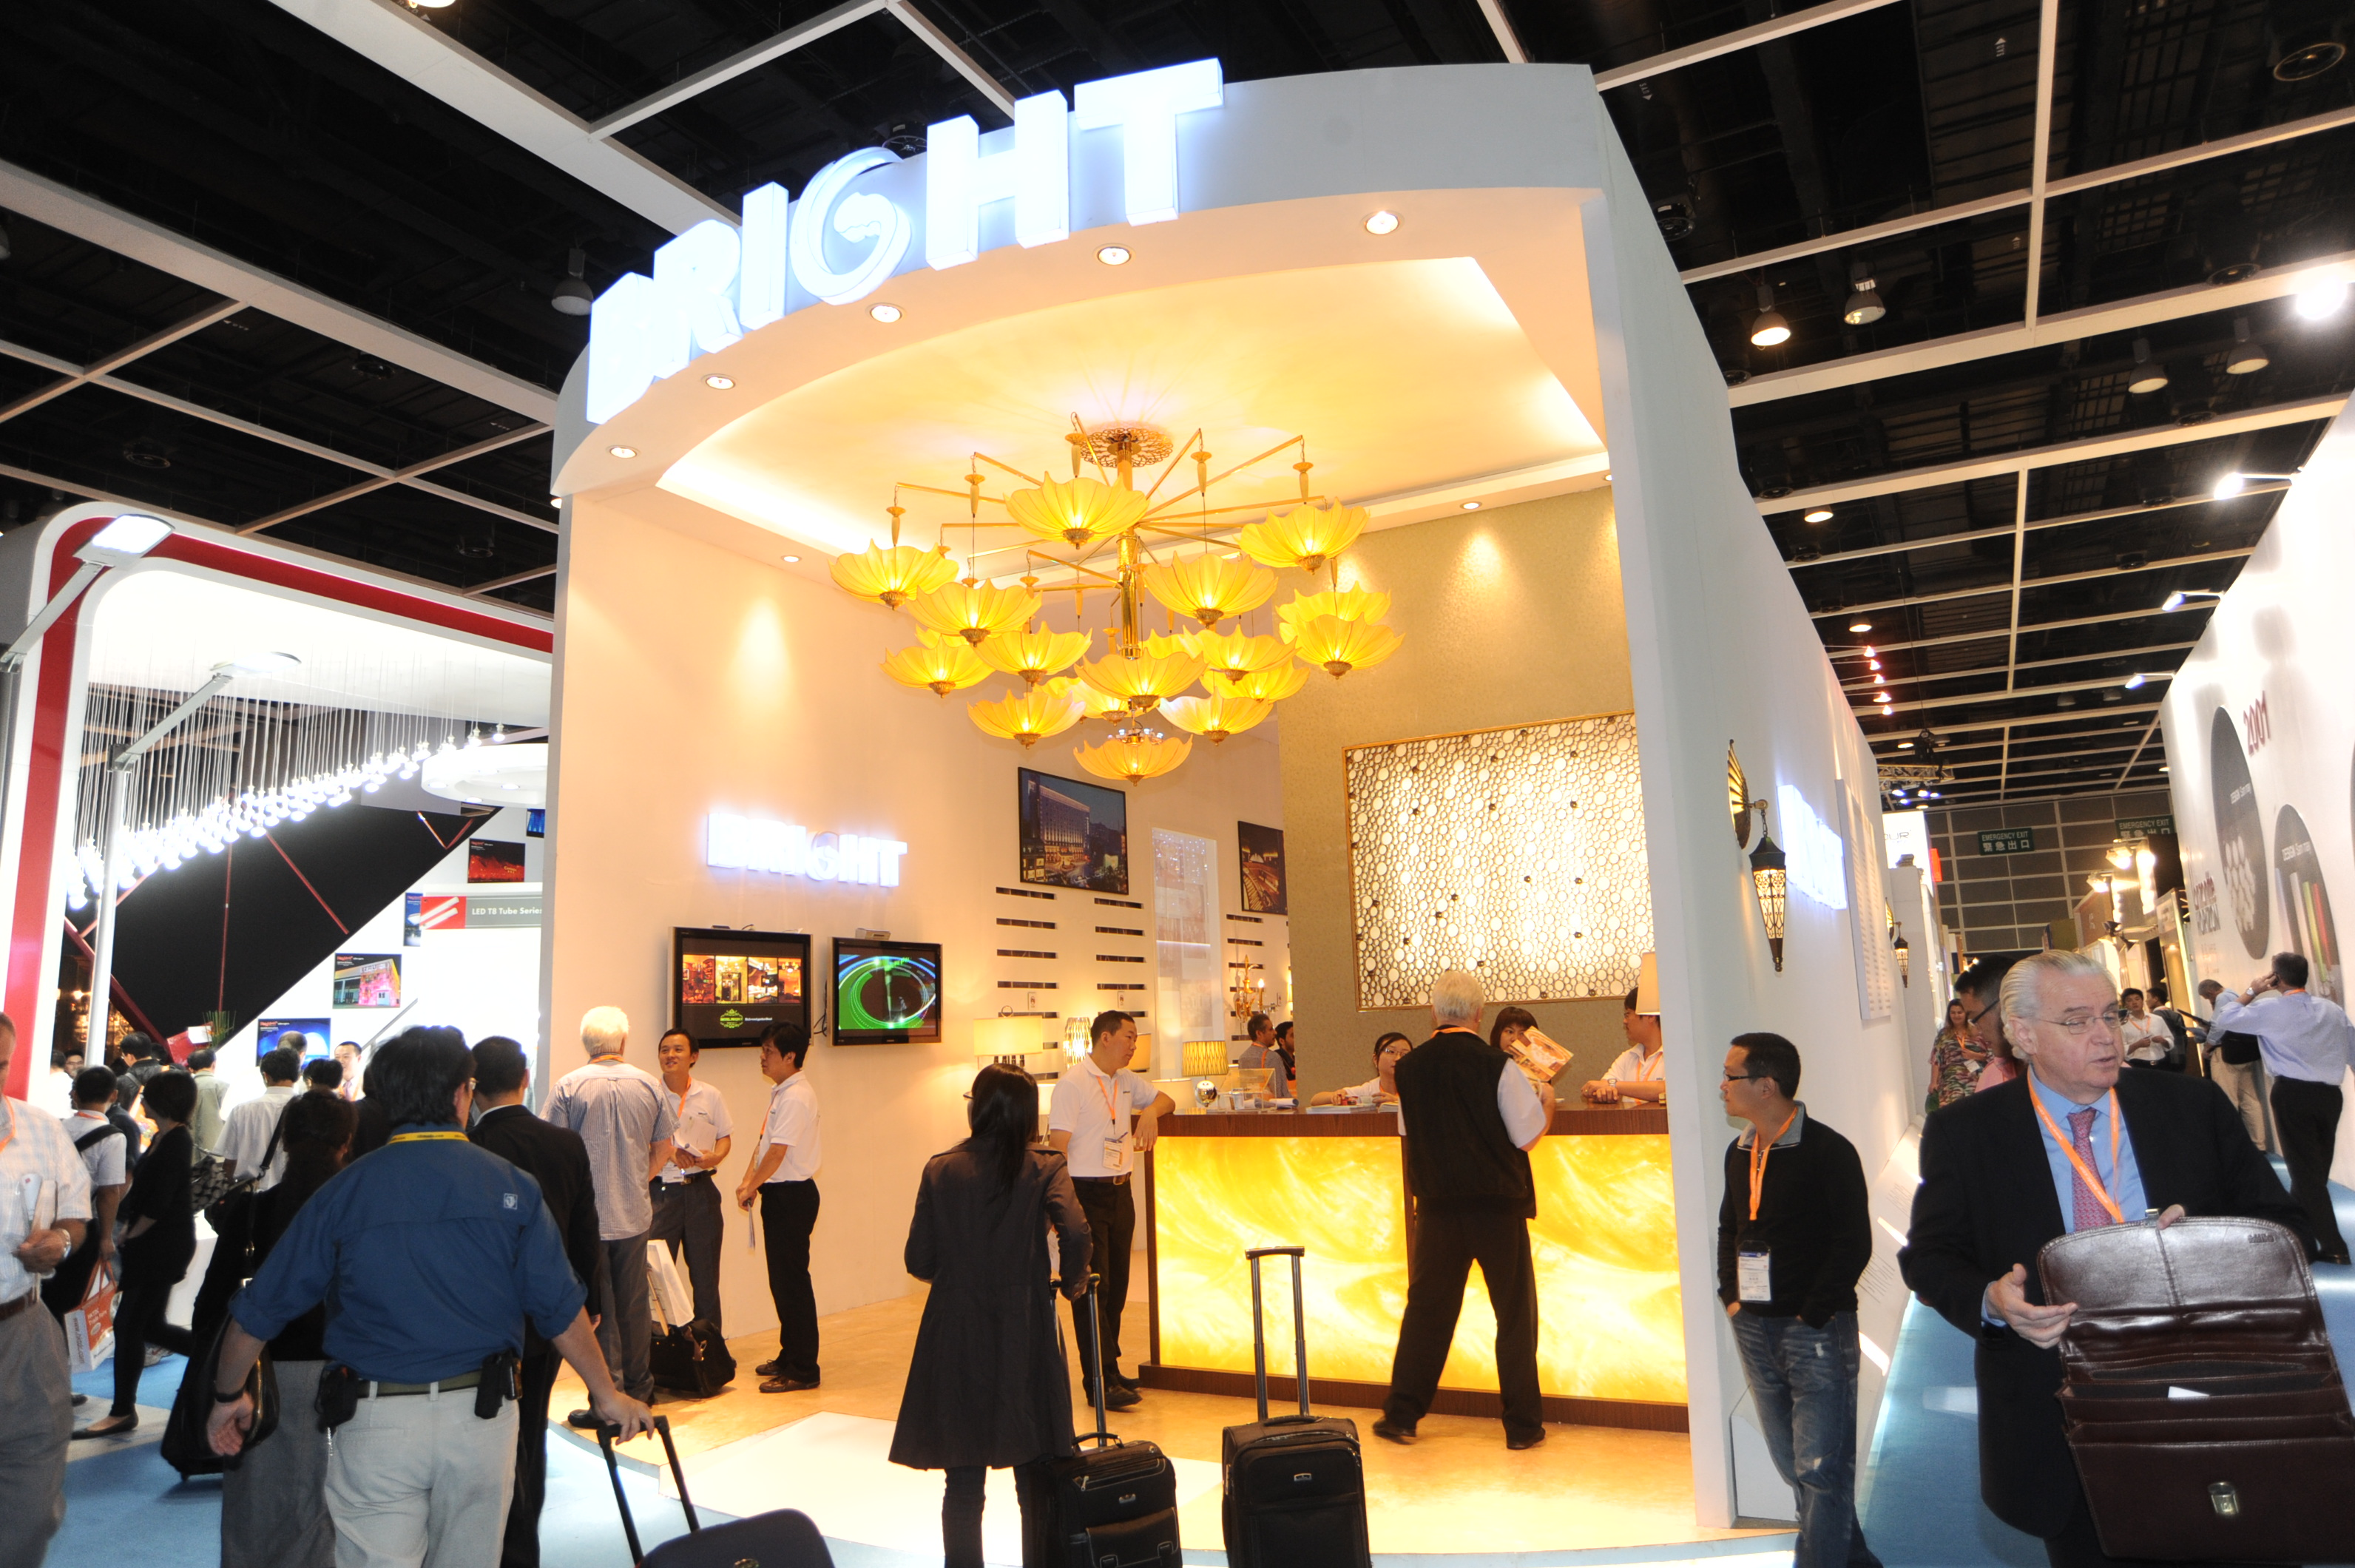 The HKTDC Hong Kong International Lighting Fair (Autumn Edition) opened today with a record 2028 exhibitors & hktdc.com - Asiau0027s Largest Lighting Fair Opens Today in Hong Kongu003cbr ...